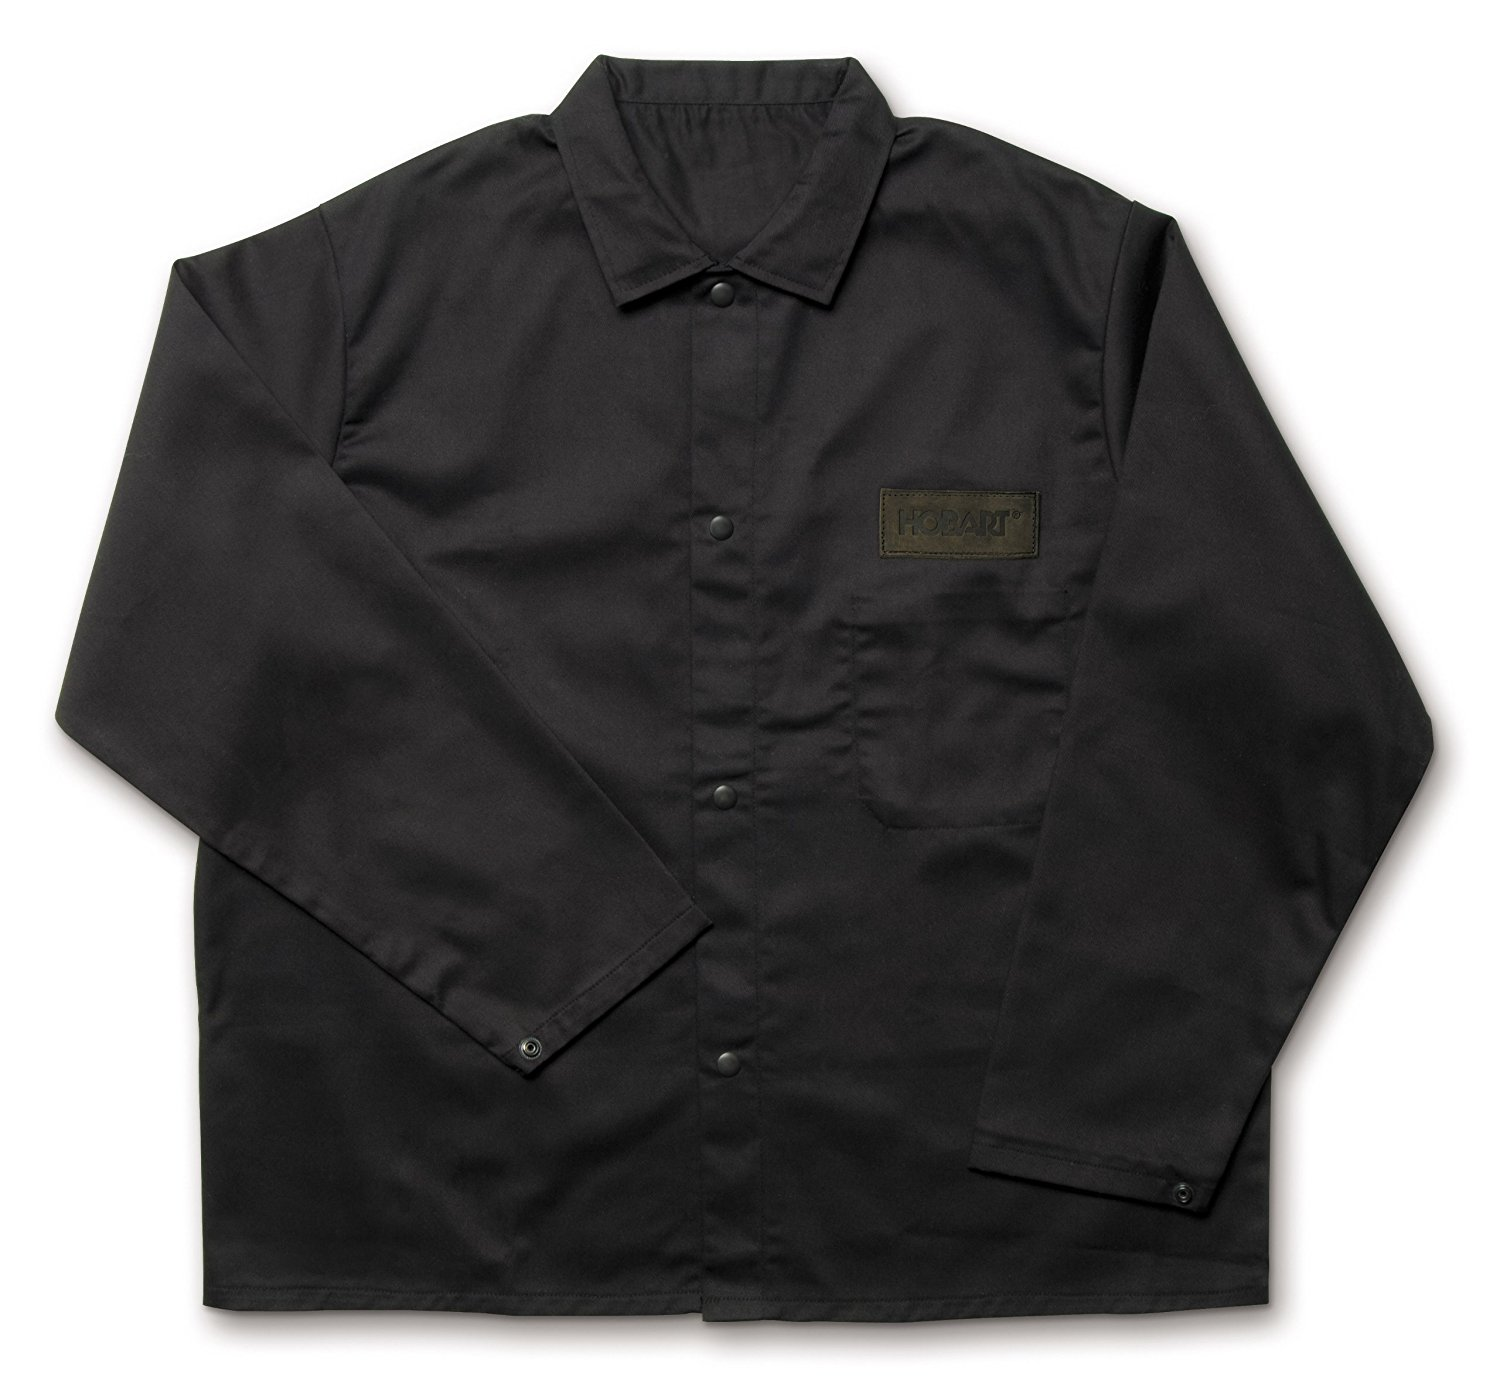 Hobart 770568 Flame Retardant Cotton Welding Jacket – XXL